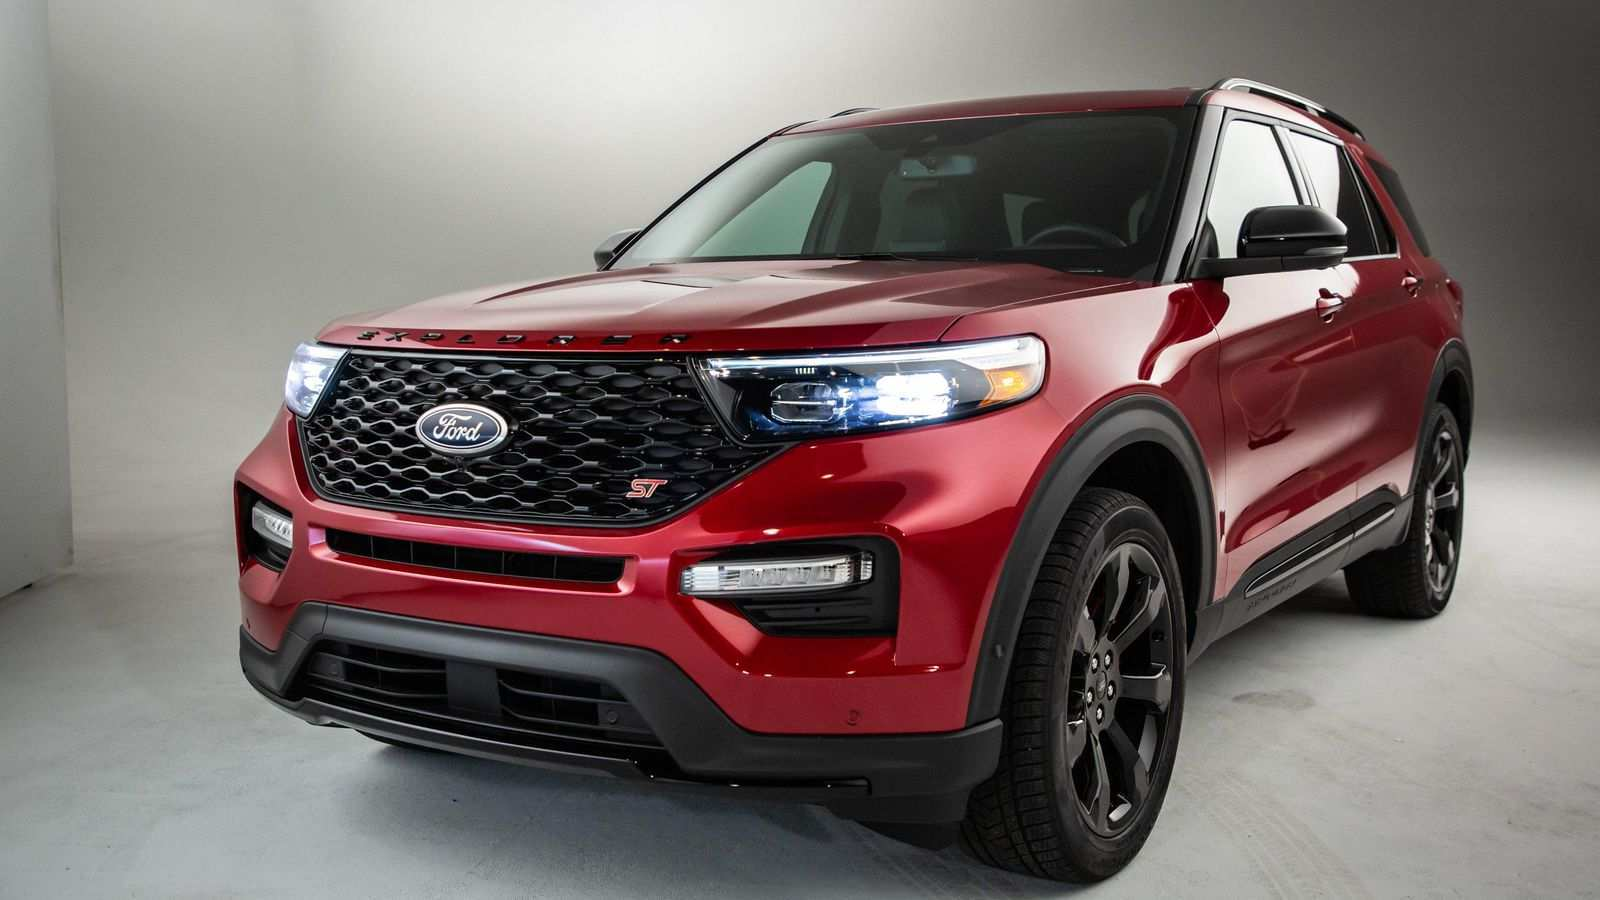 24 All New When Can You Buy A 2020 Ford Explorer Style with When Can You Buy A 2020 Ford Explorer